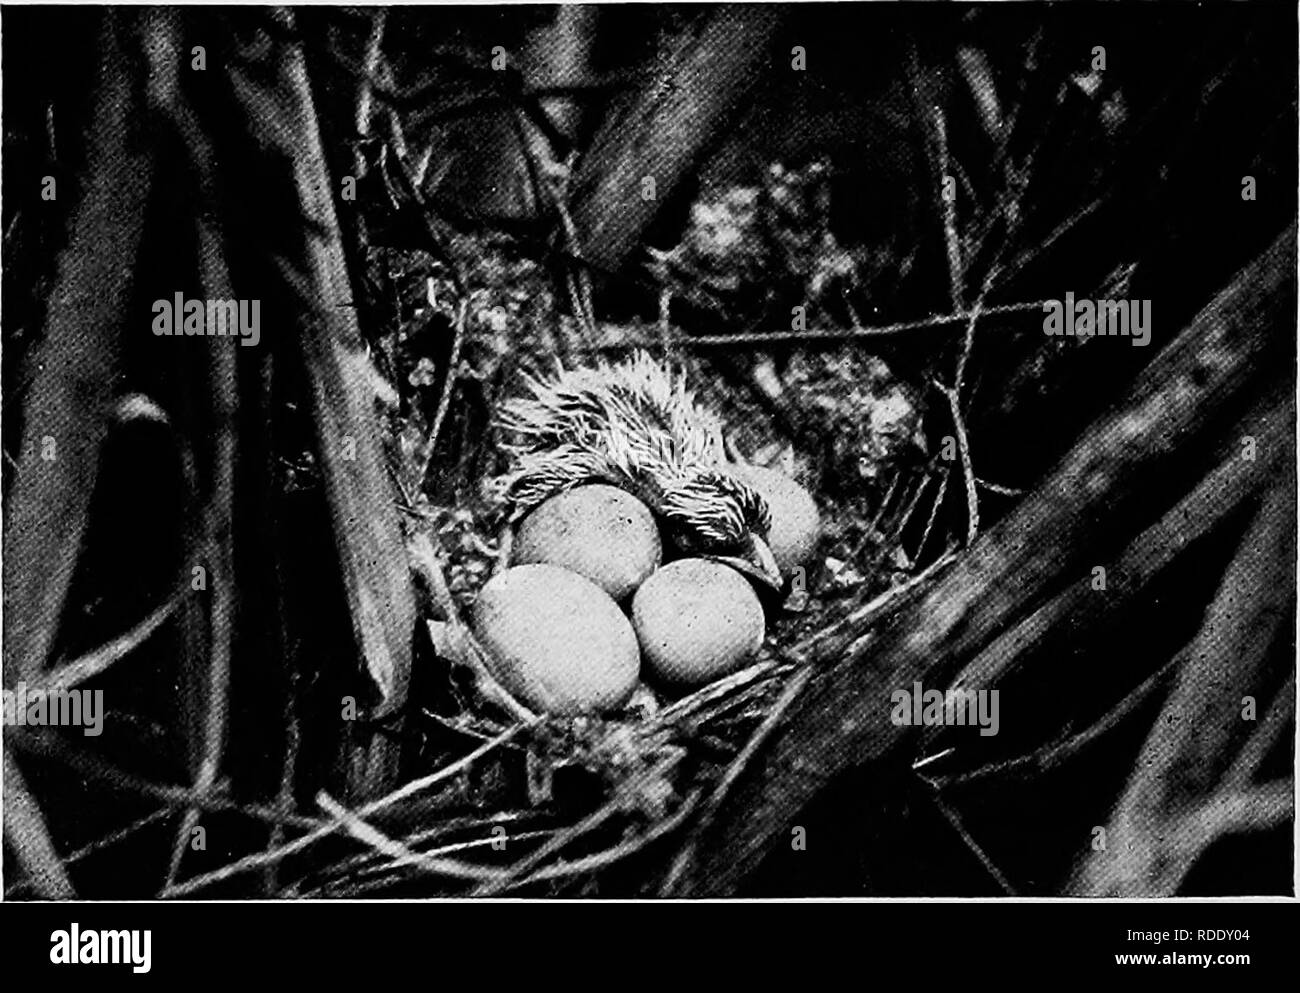 . Camera studies of wild birds in their homes . Birds; Photography of birds. 156 return either to the eggs or to feed young when I was pre- pared for picture-making. Some day I expect to find one whose home ties are stronger. Thejf do, however, have a degree of aifection for one another as the following will show:. Fig. 133. YELLOW-BILL'S—JUST HATCHING. Cuckoos are very fond of tent caterpillars, in fact they eat more of these hairy creatures than all the rest of the birds together. One day I saw a Black-bill Cuckoo sitting beside a large caterpillar nest. He would utter a few notes and then e - Stock Image